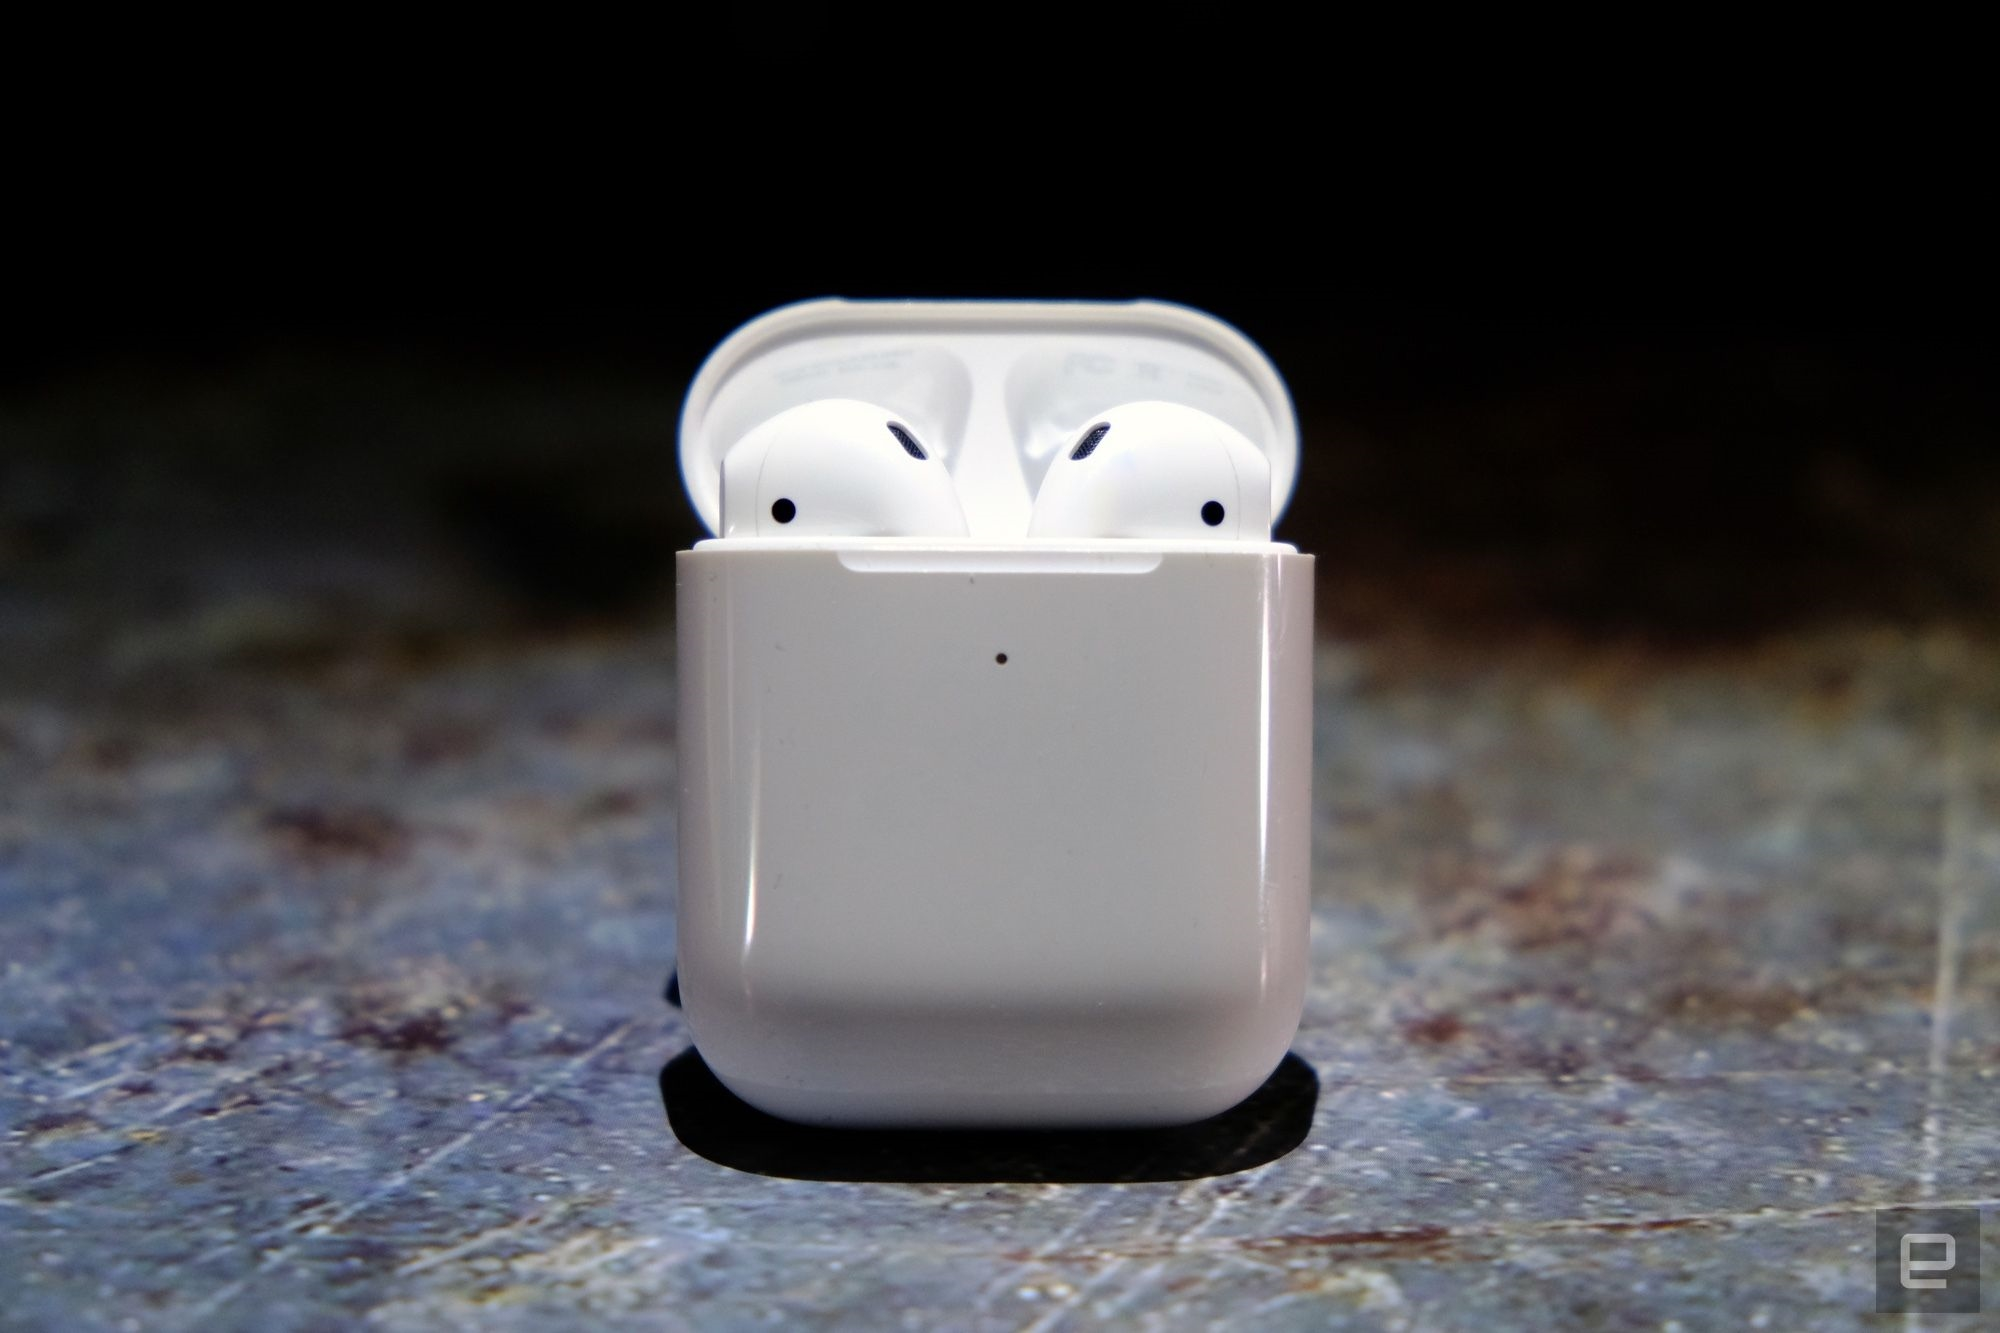 Apple AirPods with a wireless charging case hit a new low price of $108   DeviceDaily.com